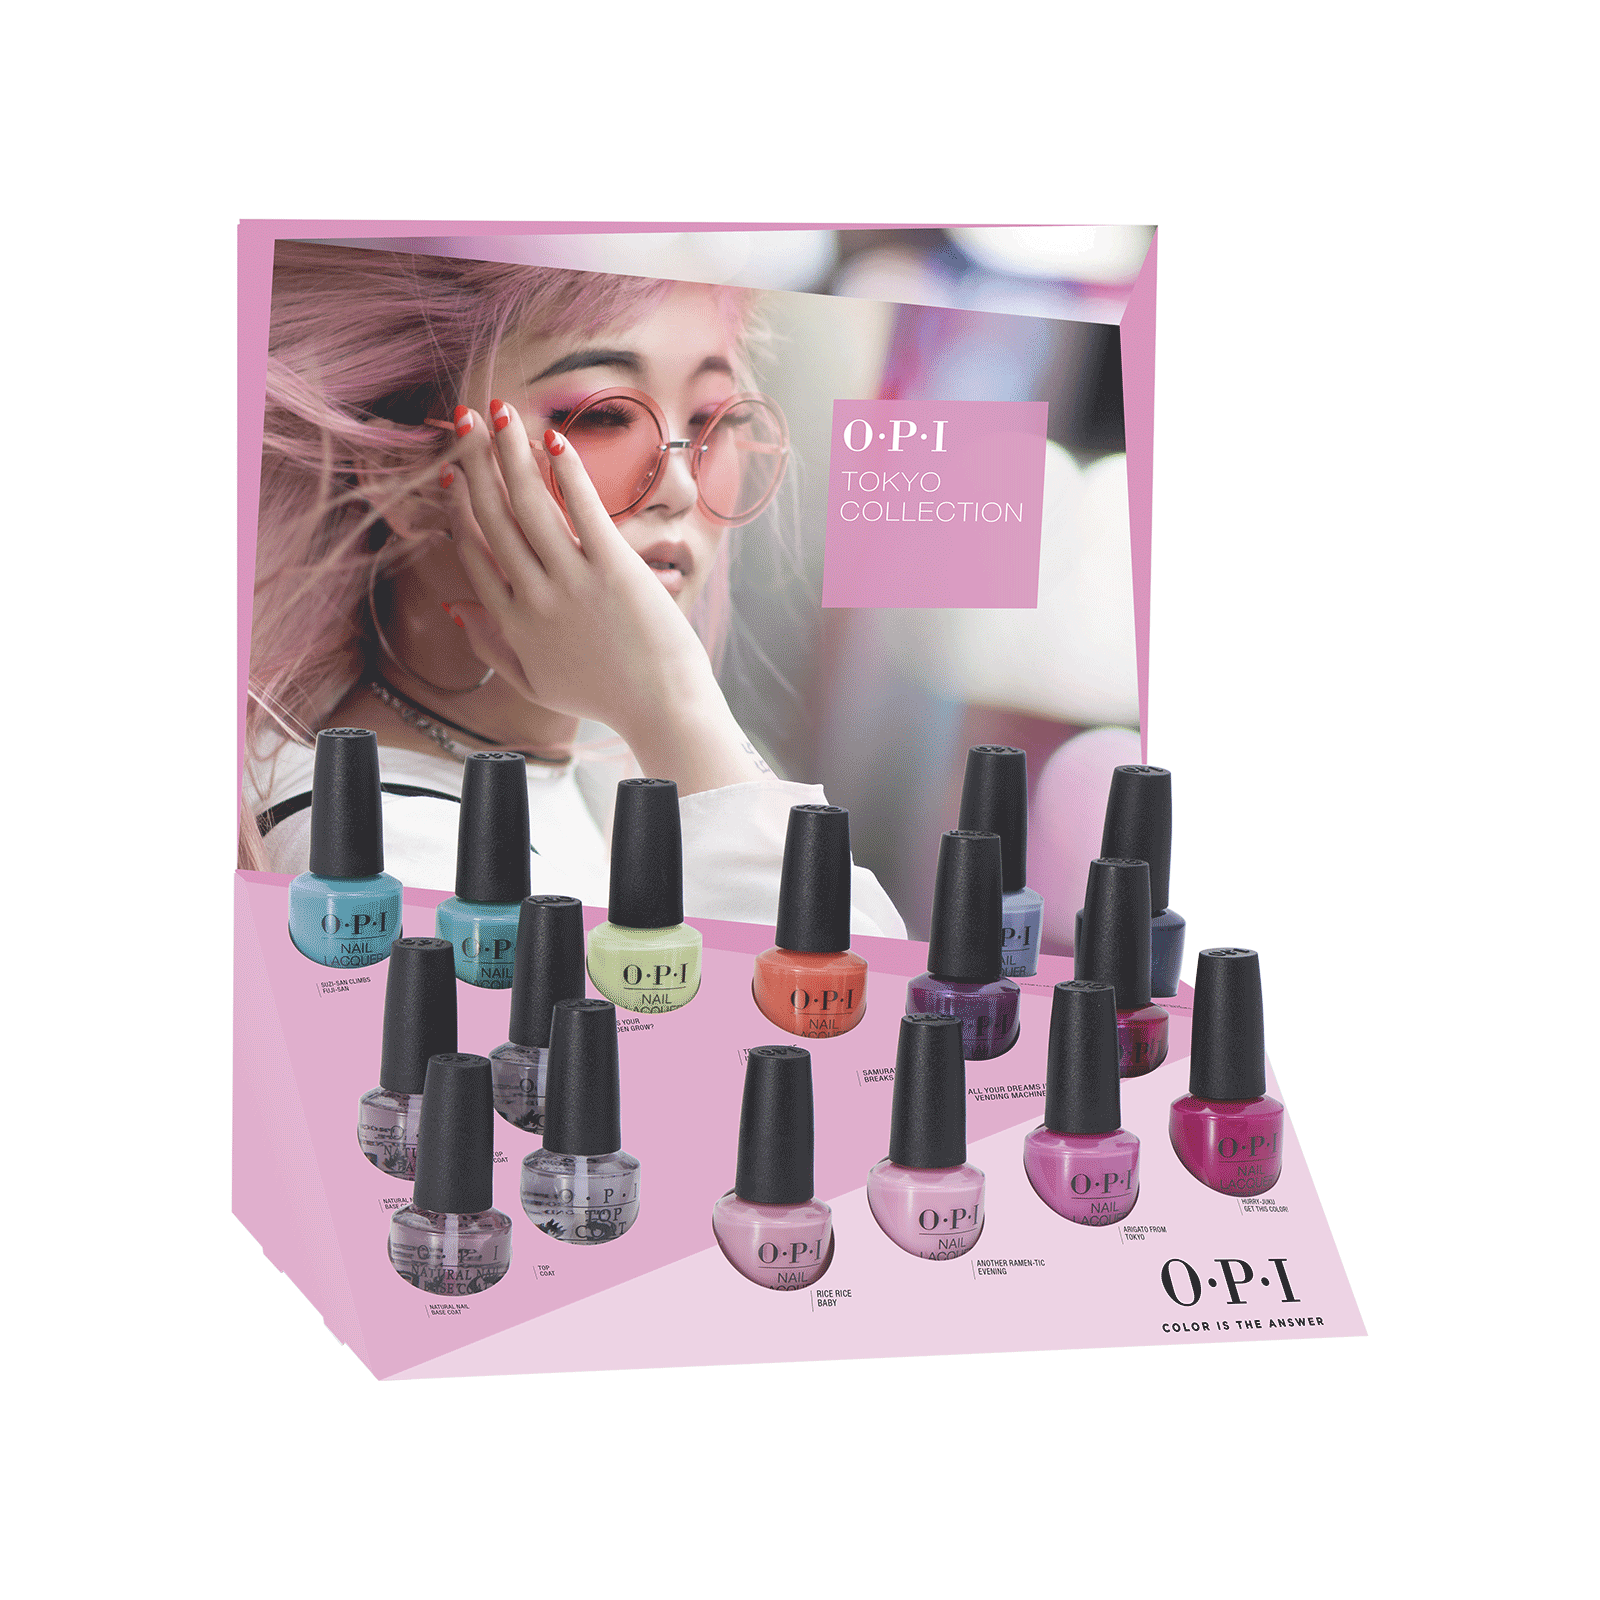 Tokyo Nail Lacquer - 16 Piece Display